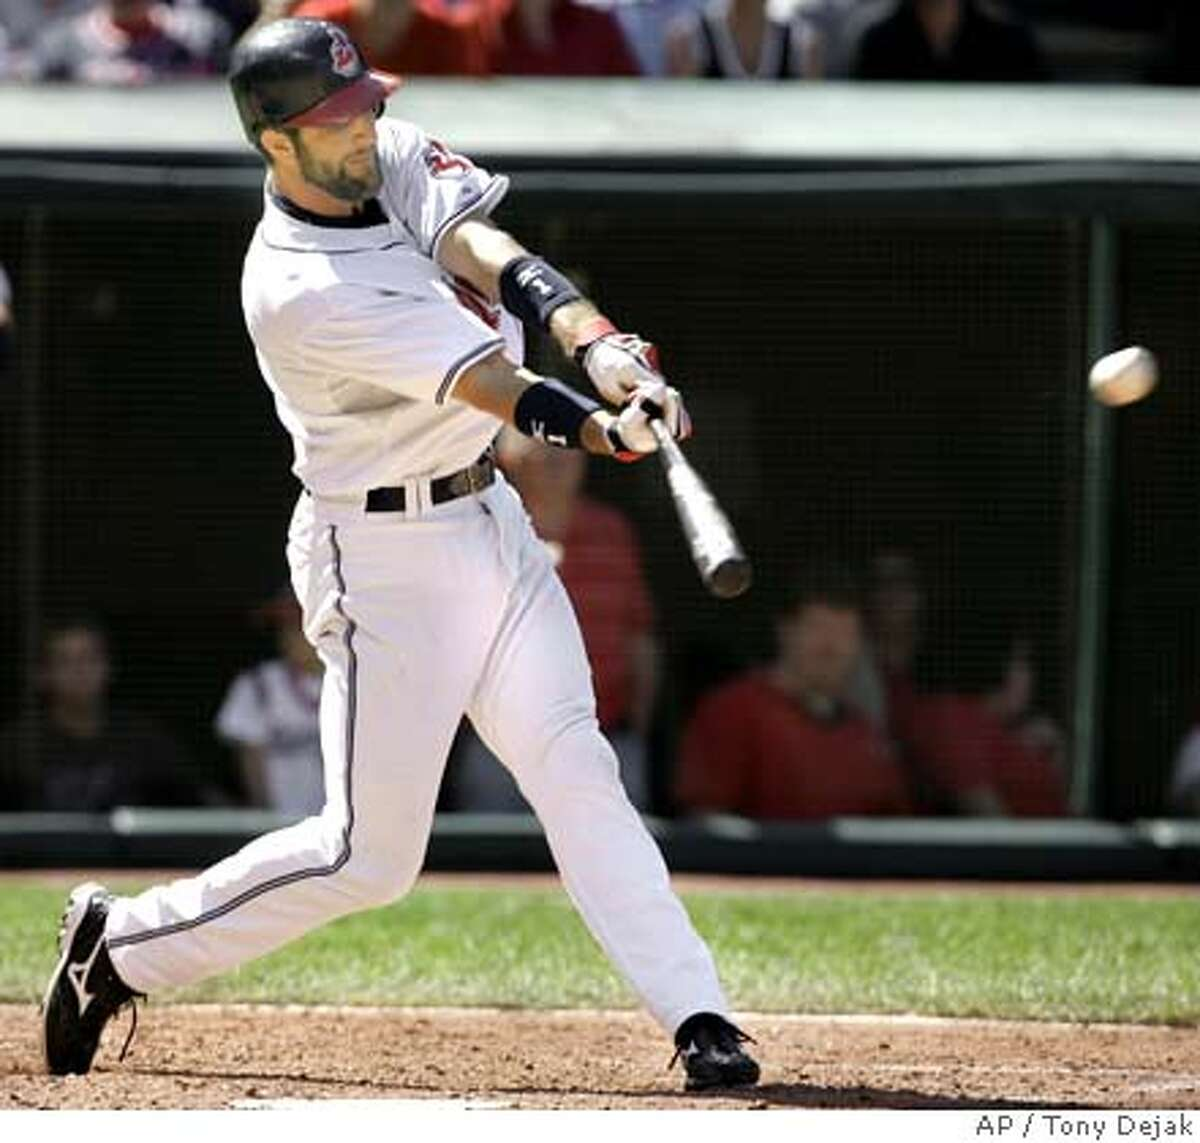 Cleveland Indians' Casey Blake smacks a two-run double off Oakland Athletics pitcher Dallas Braden in the fourth inning, in a baseball game, Sunday, Sept. 23, 2007, in Cleveland. (AP Photo/Tony Dejak)